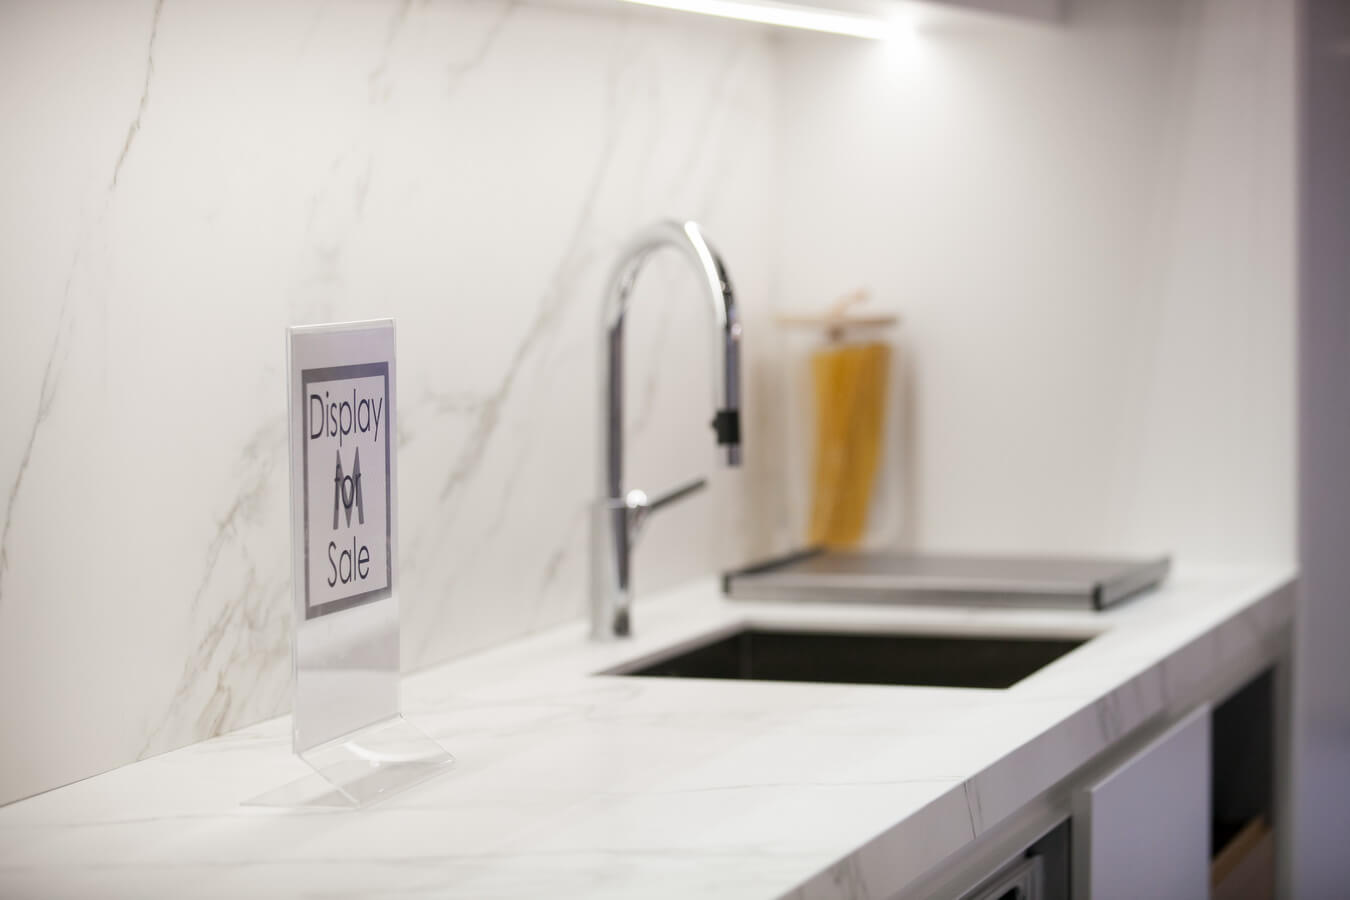 Moiety-Kitchens-Sink-CLose-up.jpg